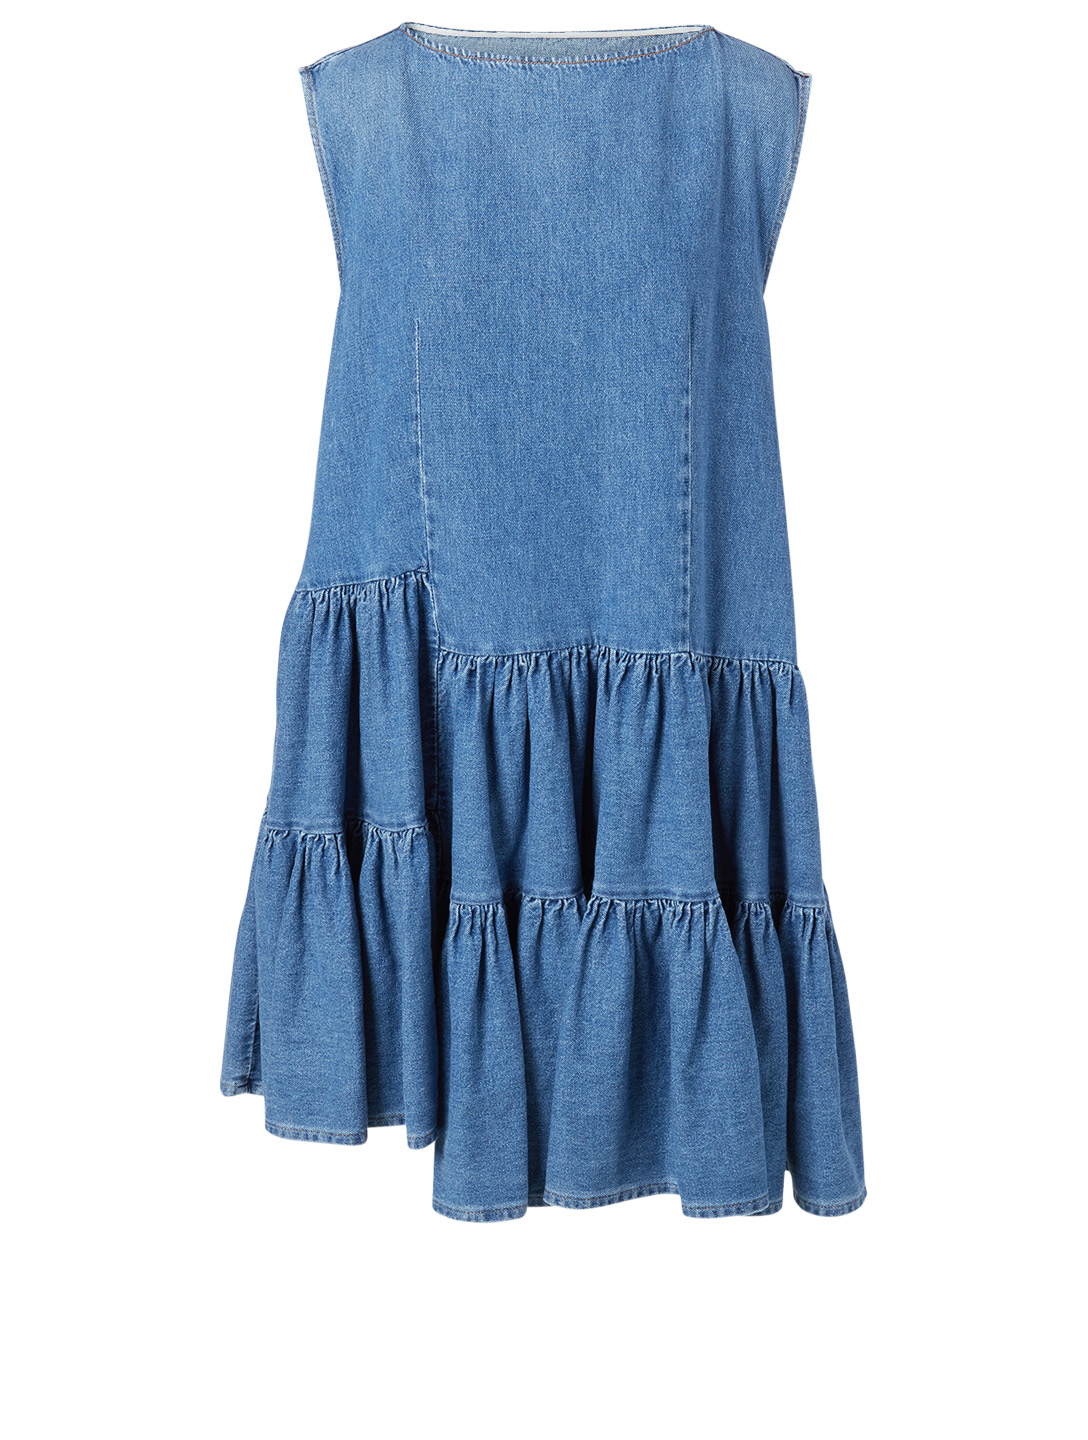 MM6 MAISON MARGIELA Asymmetric Ruffle Denim Dress Women's Blue